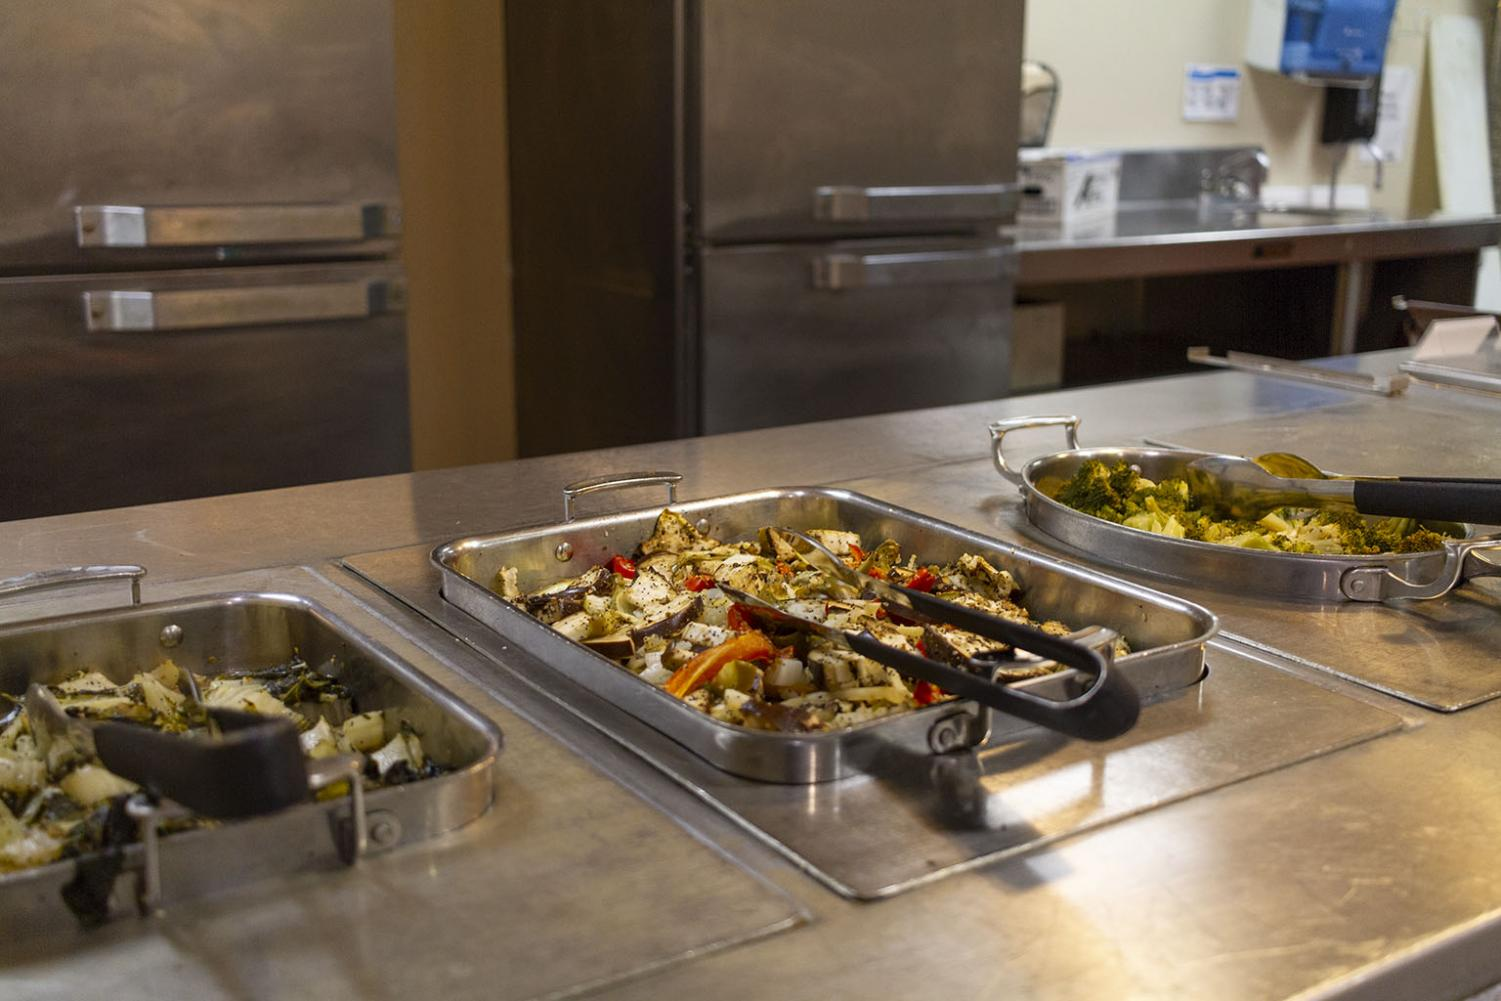 The vegan options in Mesquite dining hall Photo by Colin Stevenson